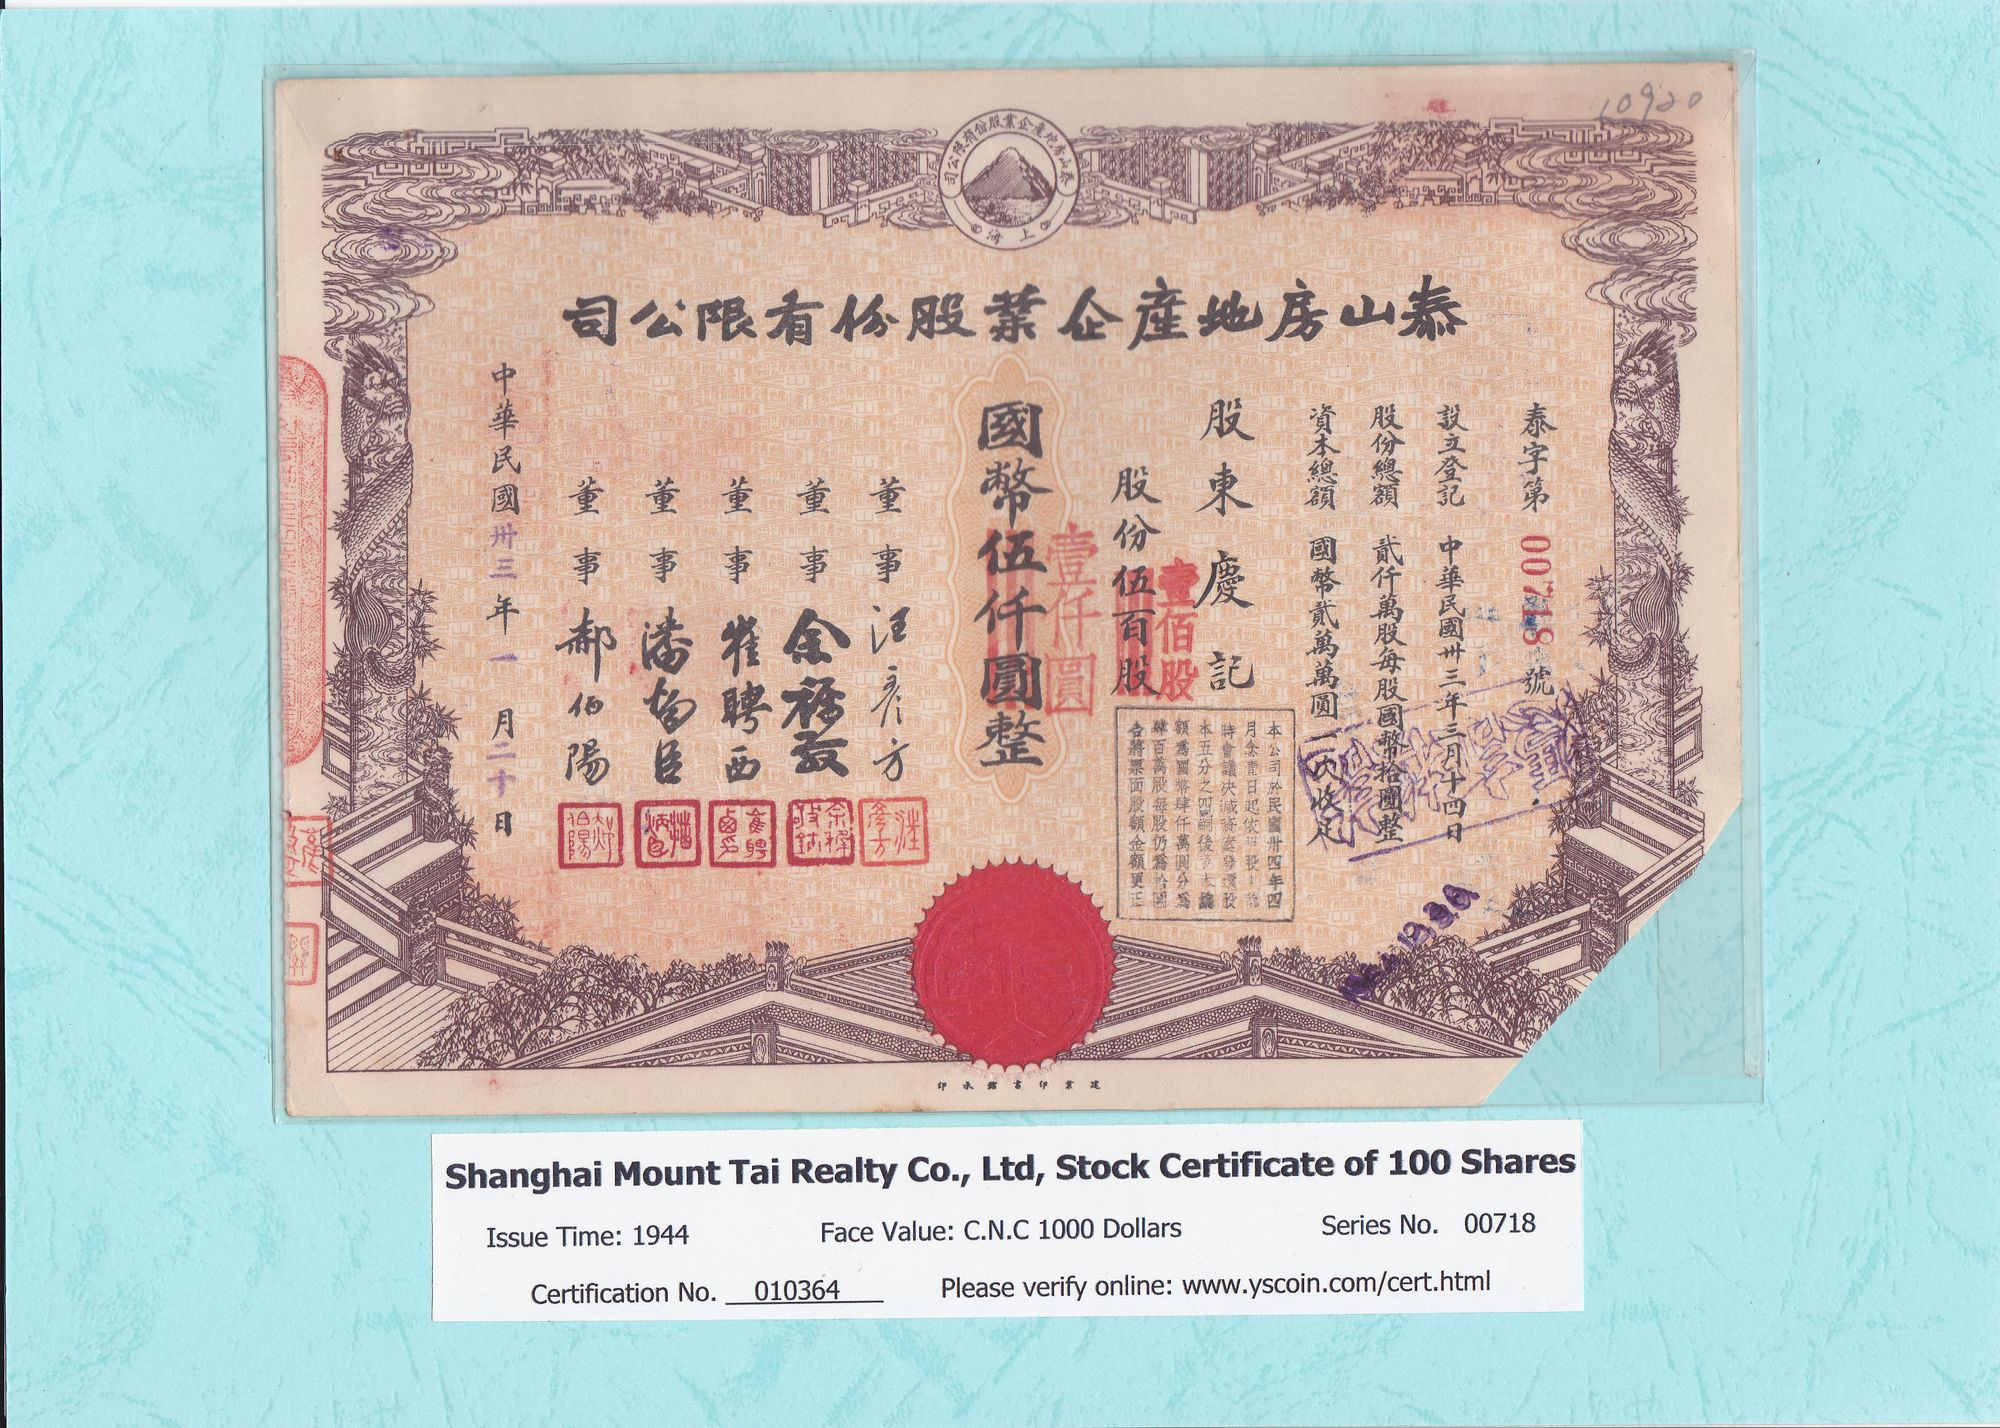 010364, Shanghai Mount Tai Realty Co., Ltd, Stock Certificate of 100 Shares